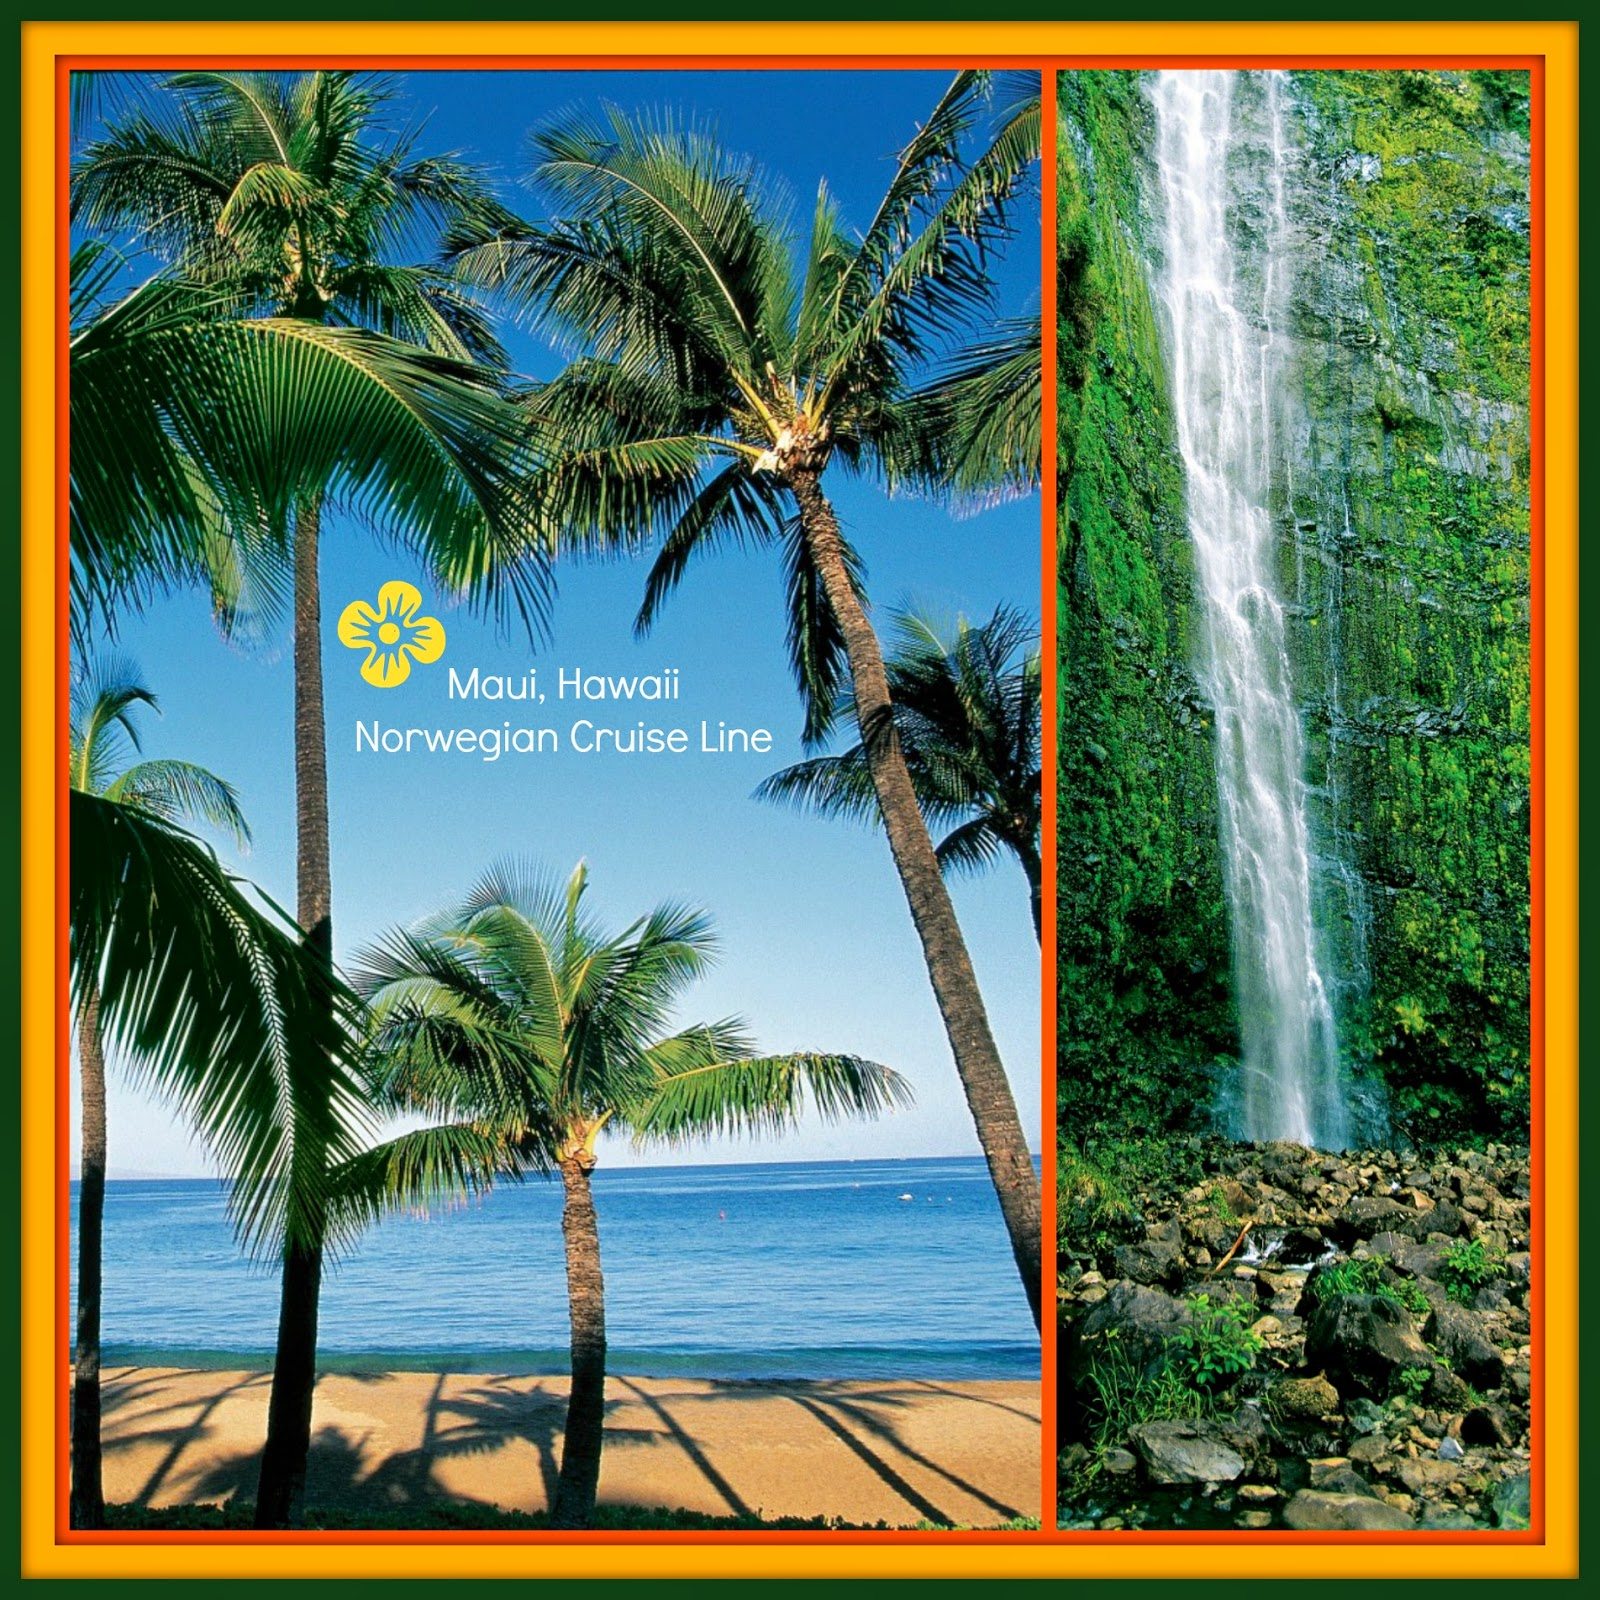 A Pristine Beach Warm Tropical Breezes And The Love Of: Linda With Zoe's Cruises & Tours